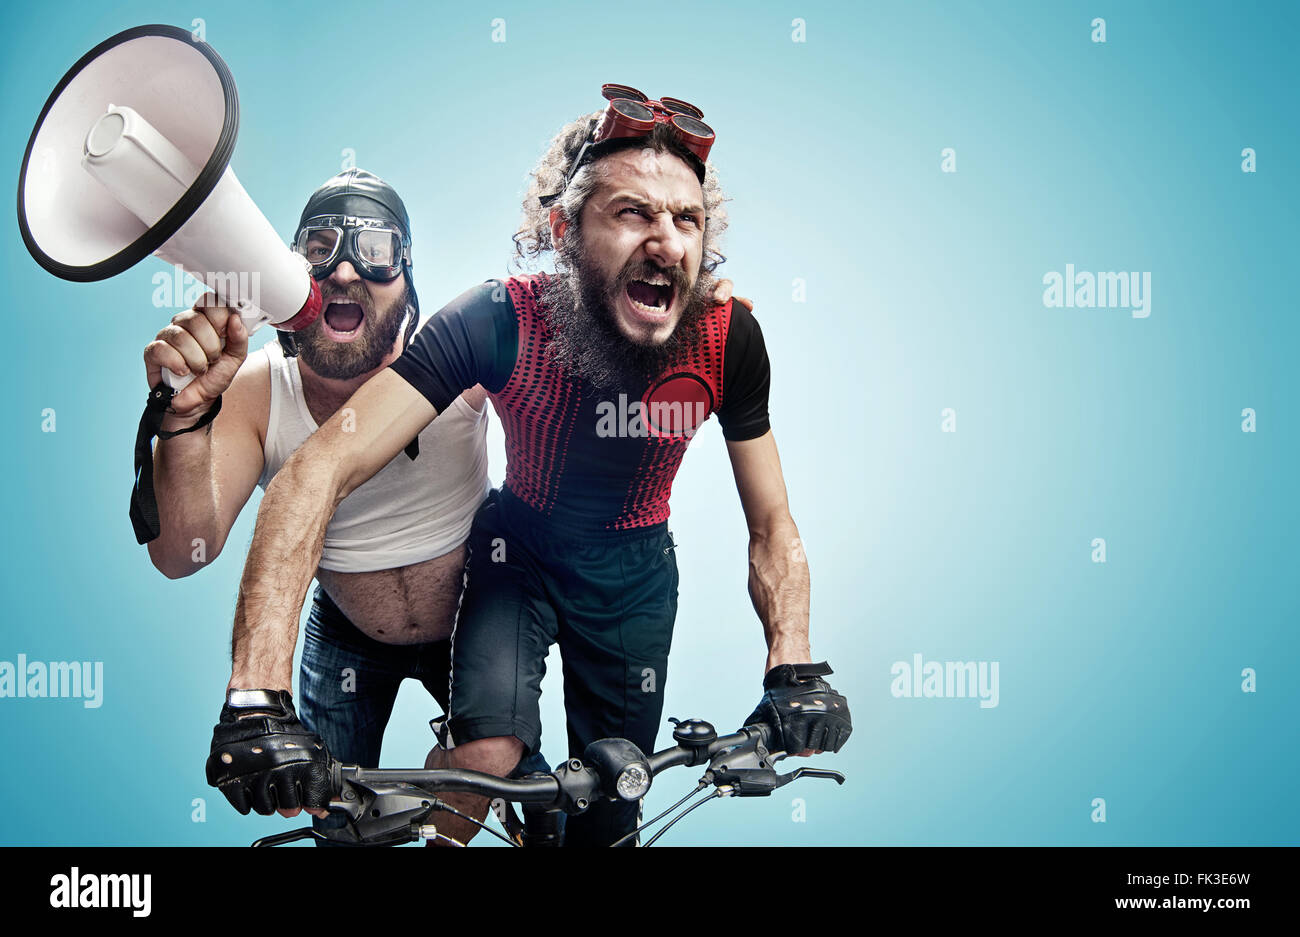 Two hilarious bicyclists involved in a contest - Stock Image